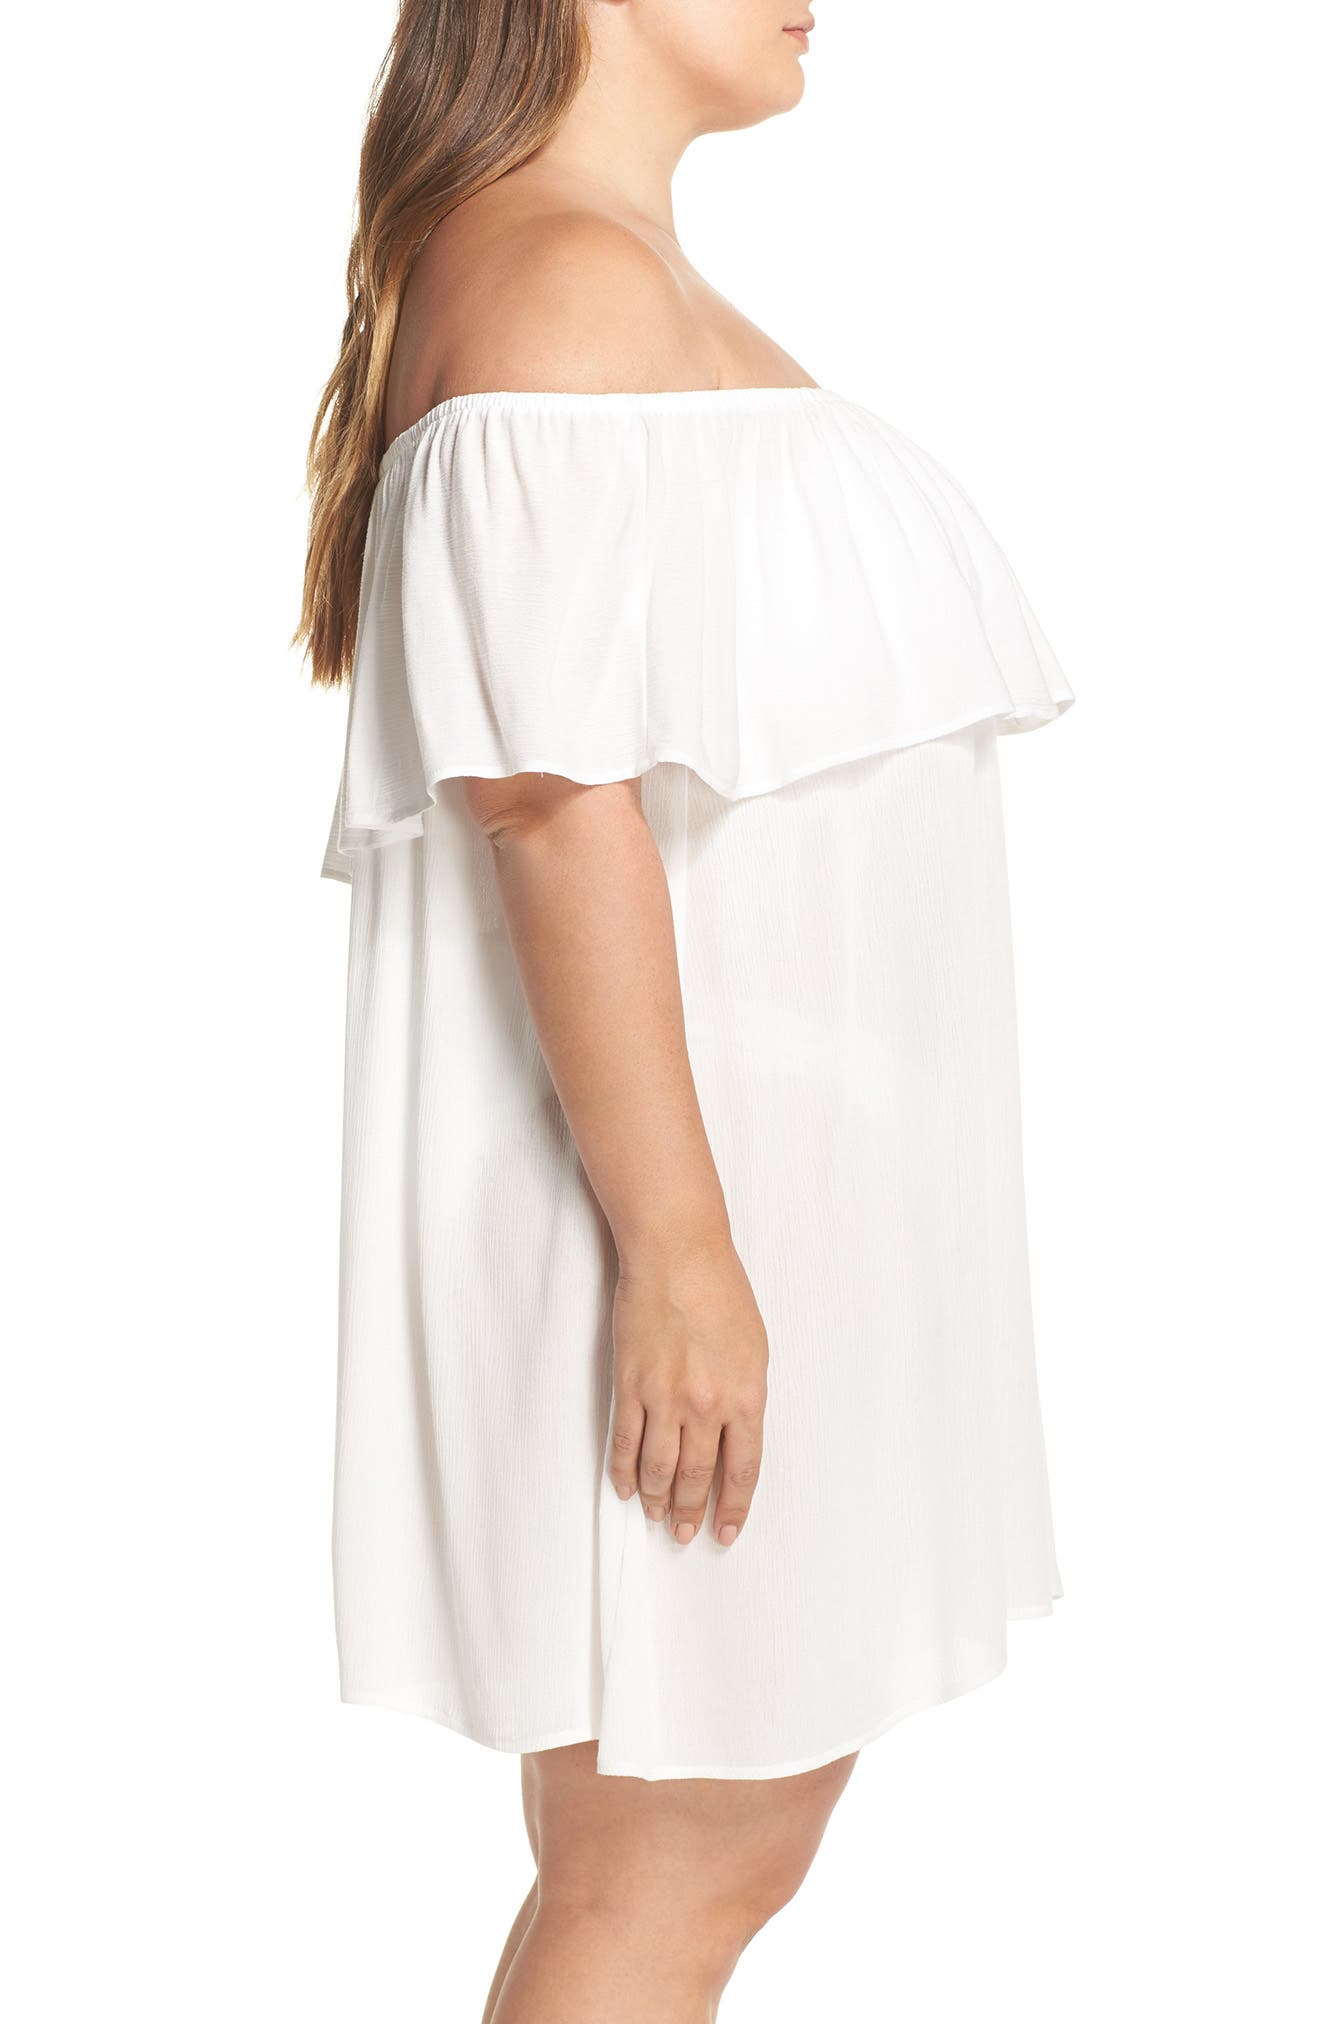 Alternate Image 3  - Becca Etc. Southern Belle Off the Shoulder Cover-Up Dress (Plus Size)